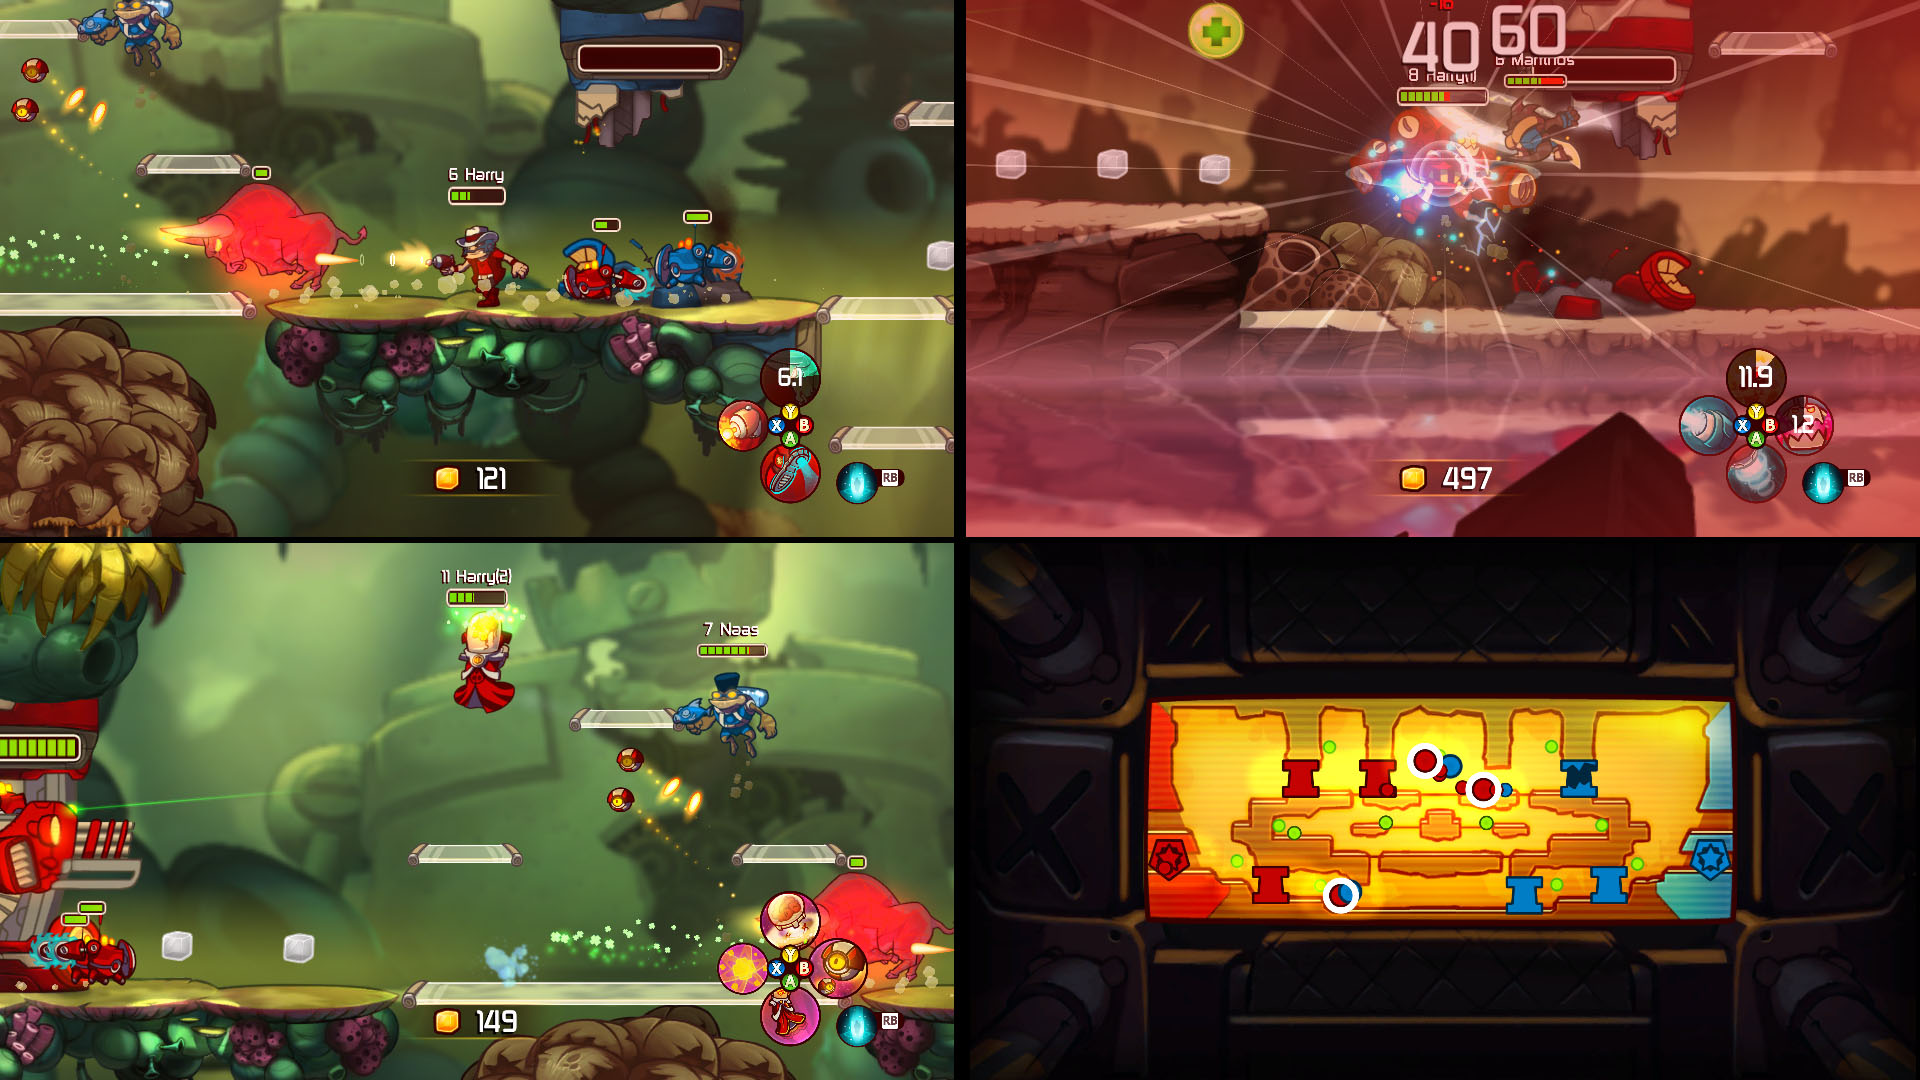 https://upload.wikimedia.org/wikipedia/commons/a/a8/Awesomenauts_-_Screenshot_18.jpg